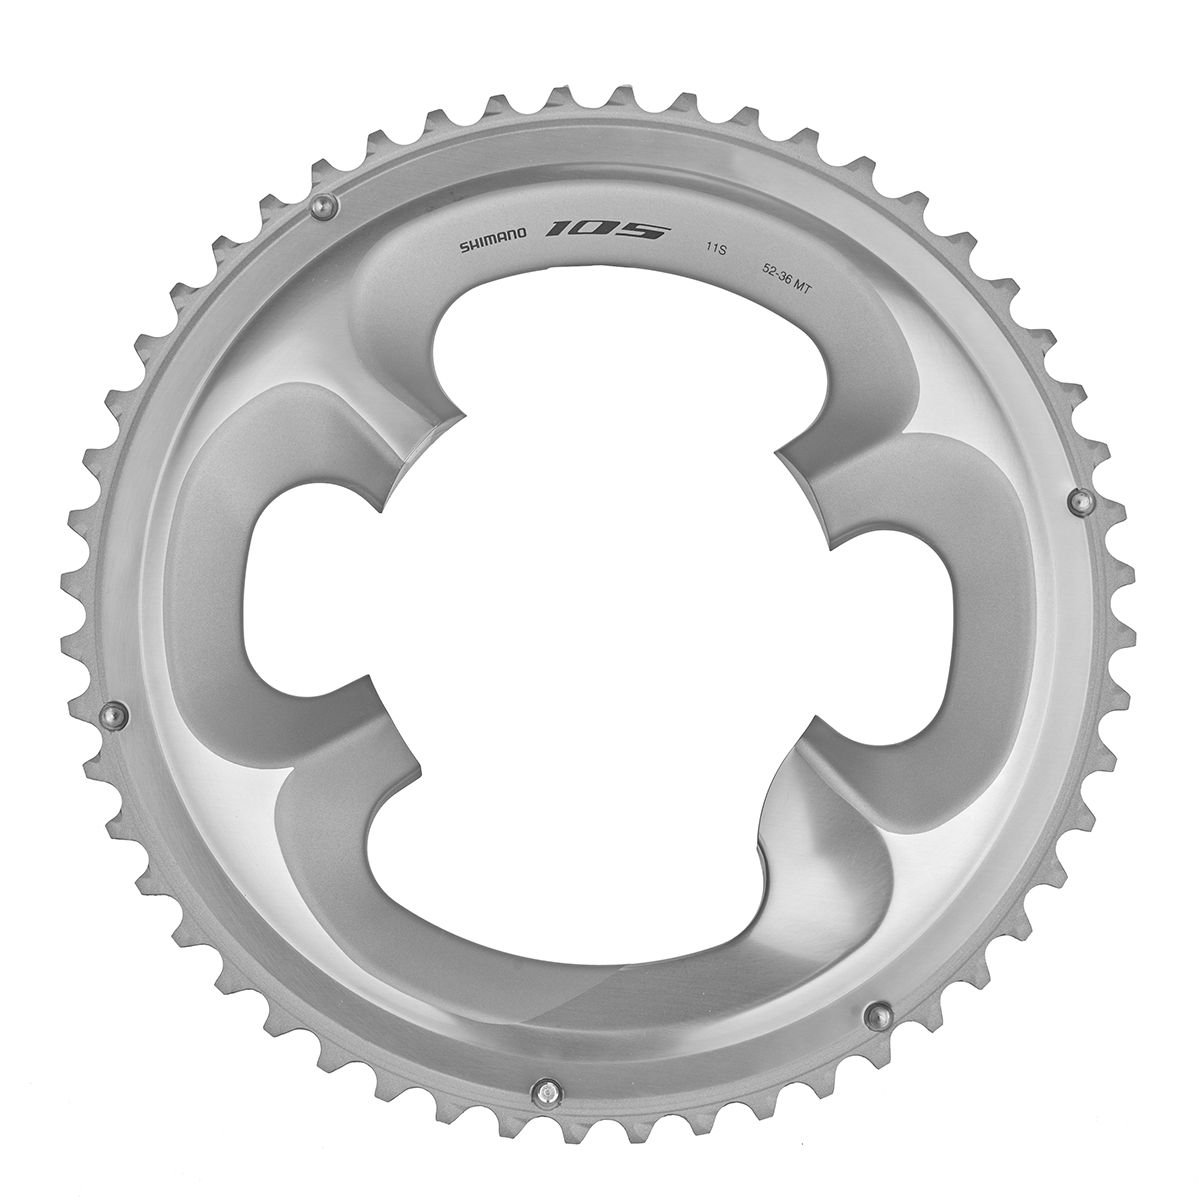 Shimano 52T FC-R7000 Outer Chainrings 11 Spd Black